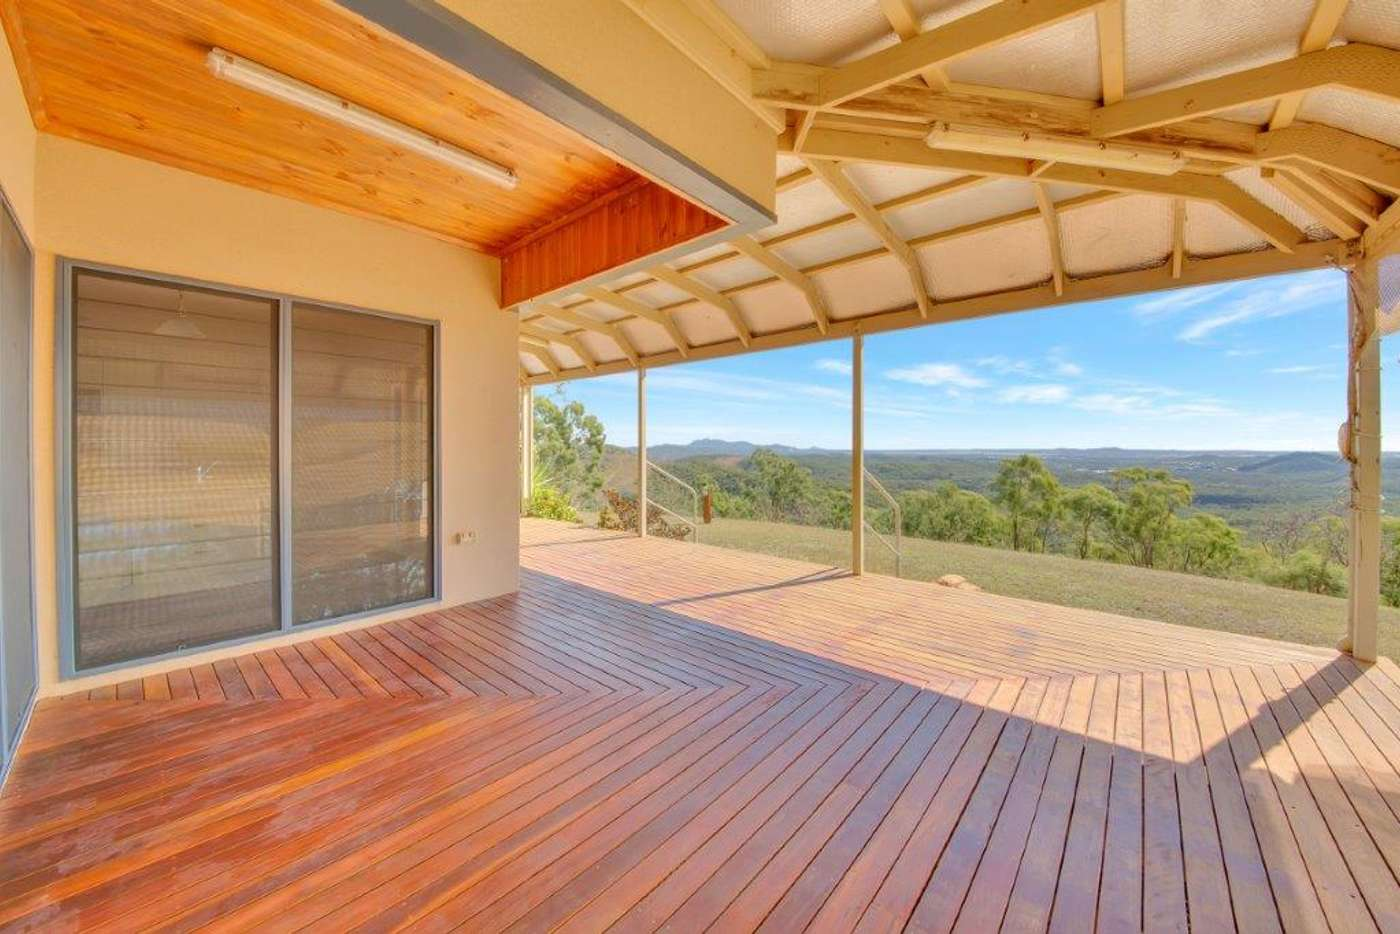 Sixth view of Homely house listing, 30 COMPIGNE ROAD, Wurdong Heights QLD 4680